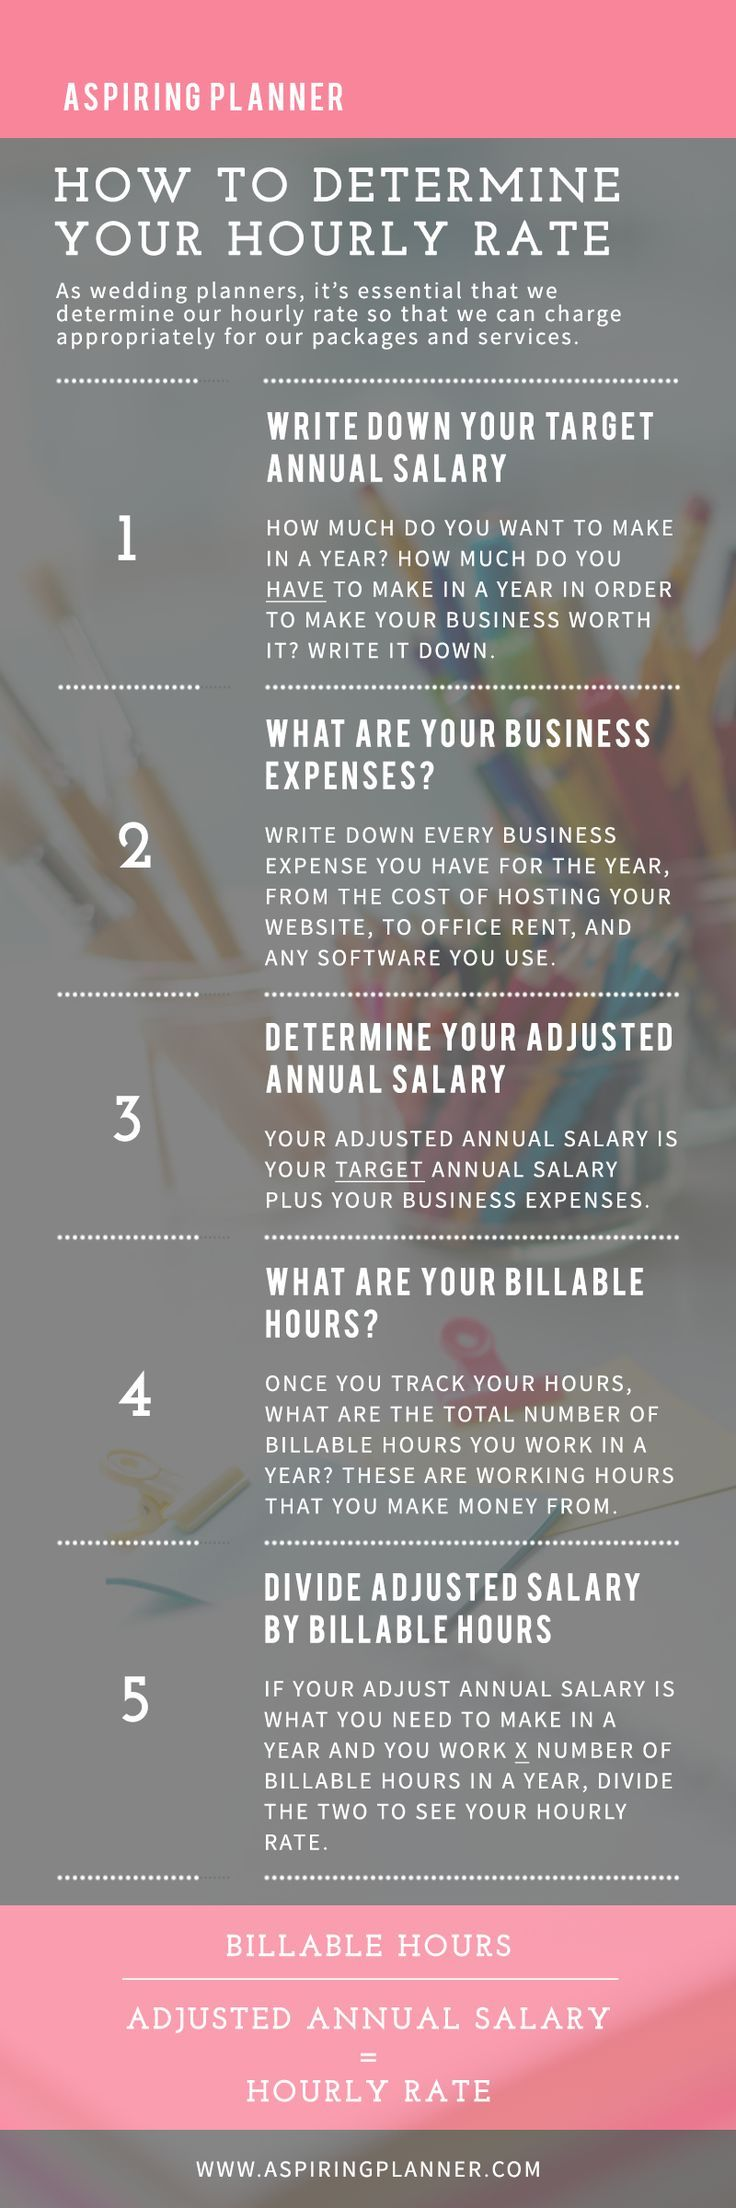 For Wedding Planners :: How to Price Your Wedding Services and Determine Your Hourly Rate | www.aspiringplann...